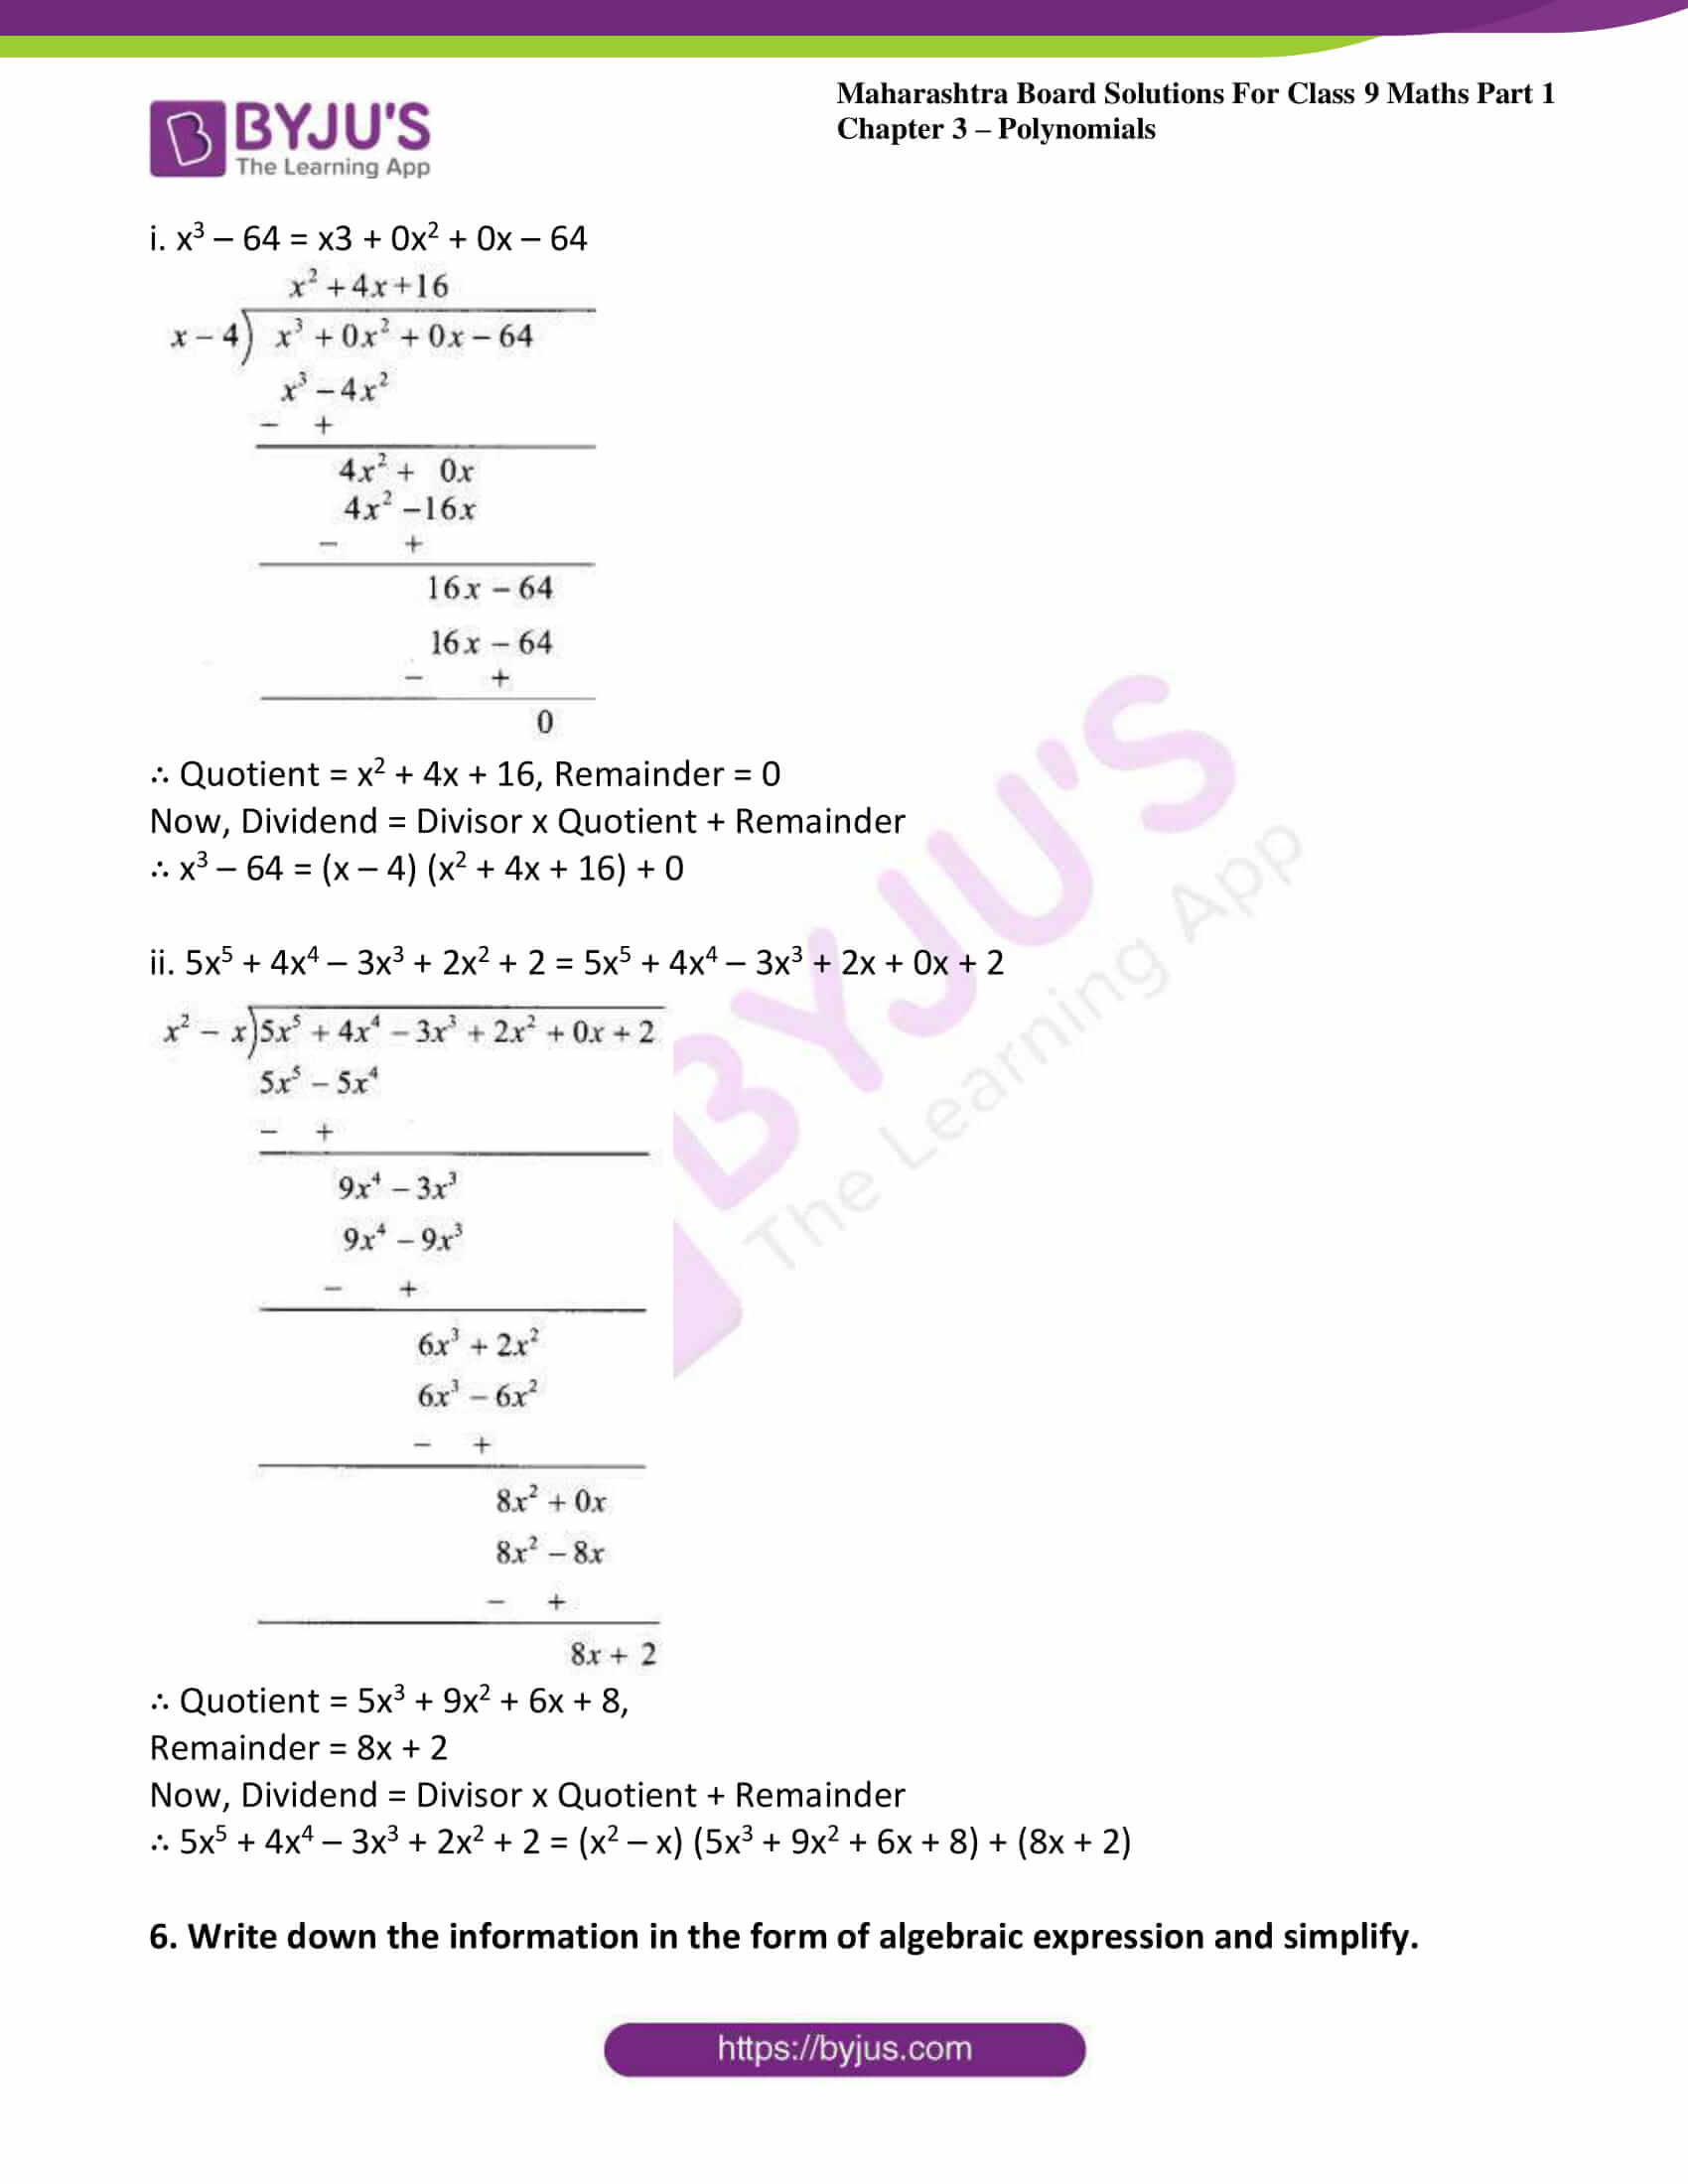 msbshse sol class 9 maths part 1 chapter 3 polynomials 11